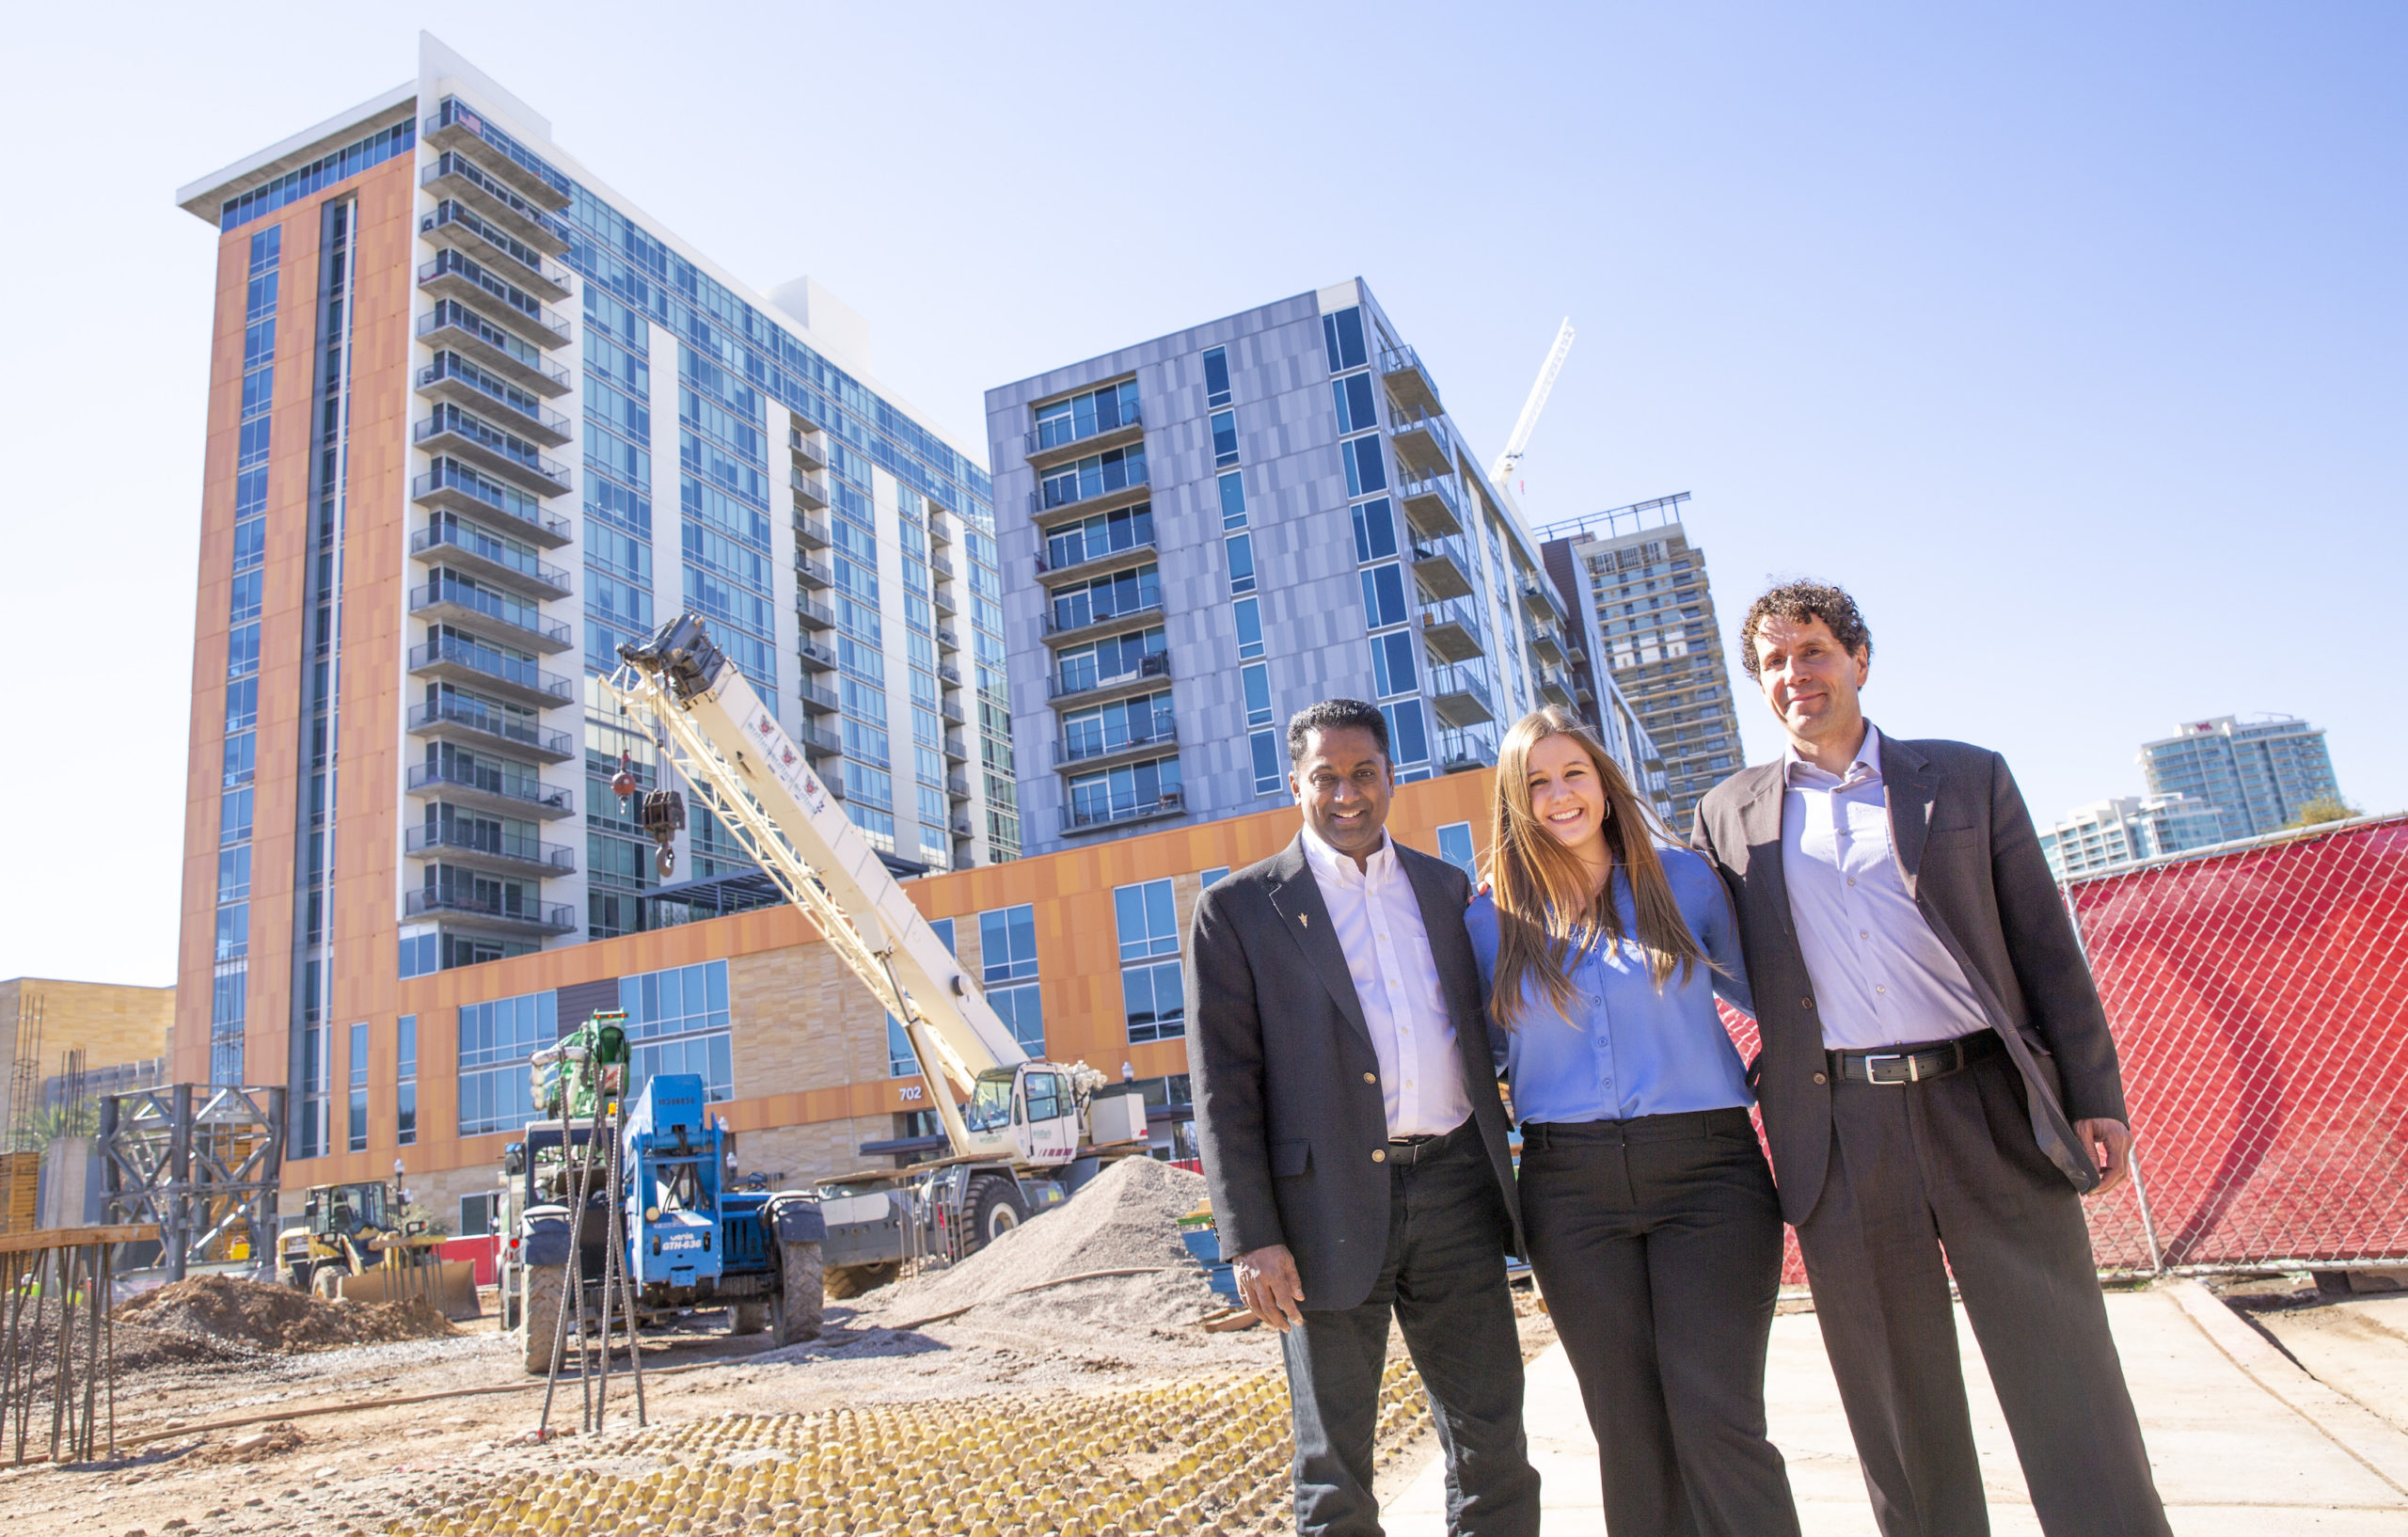 three people standing in front of a construction site